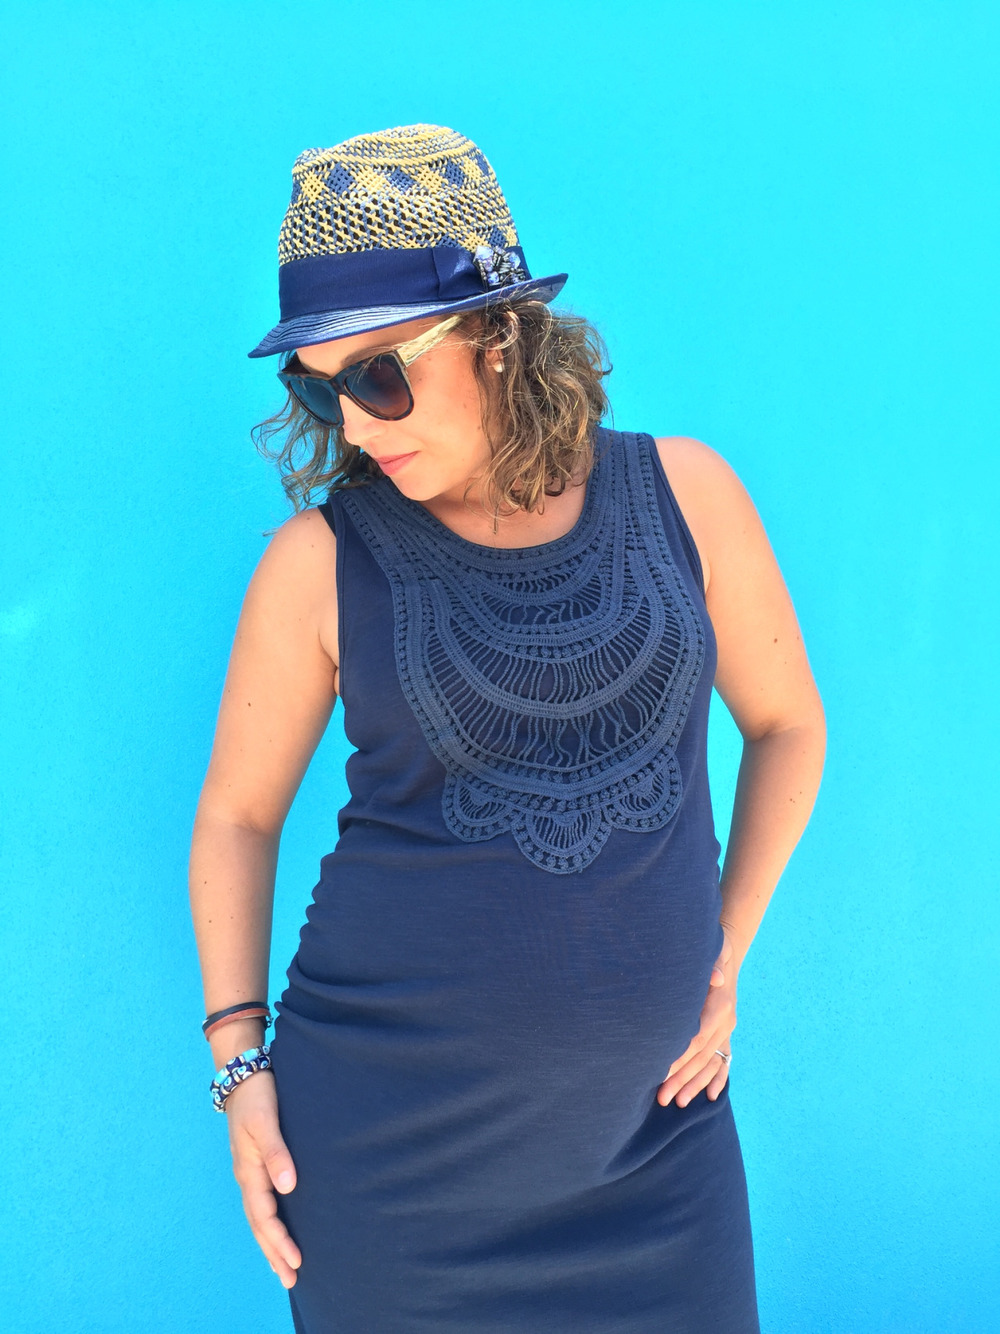 maternity, maternity dress, maternity outfit, navy blue maternity dress